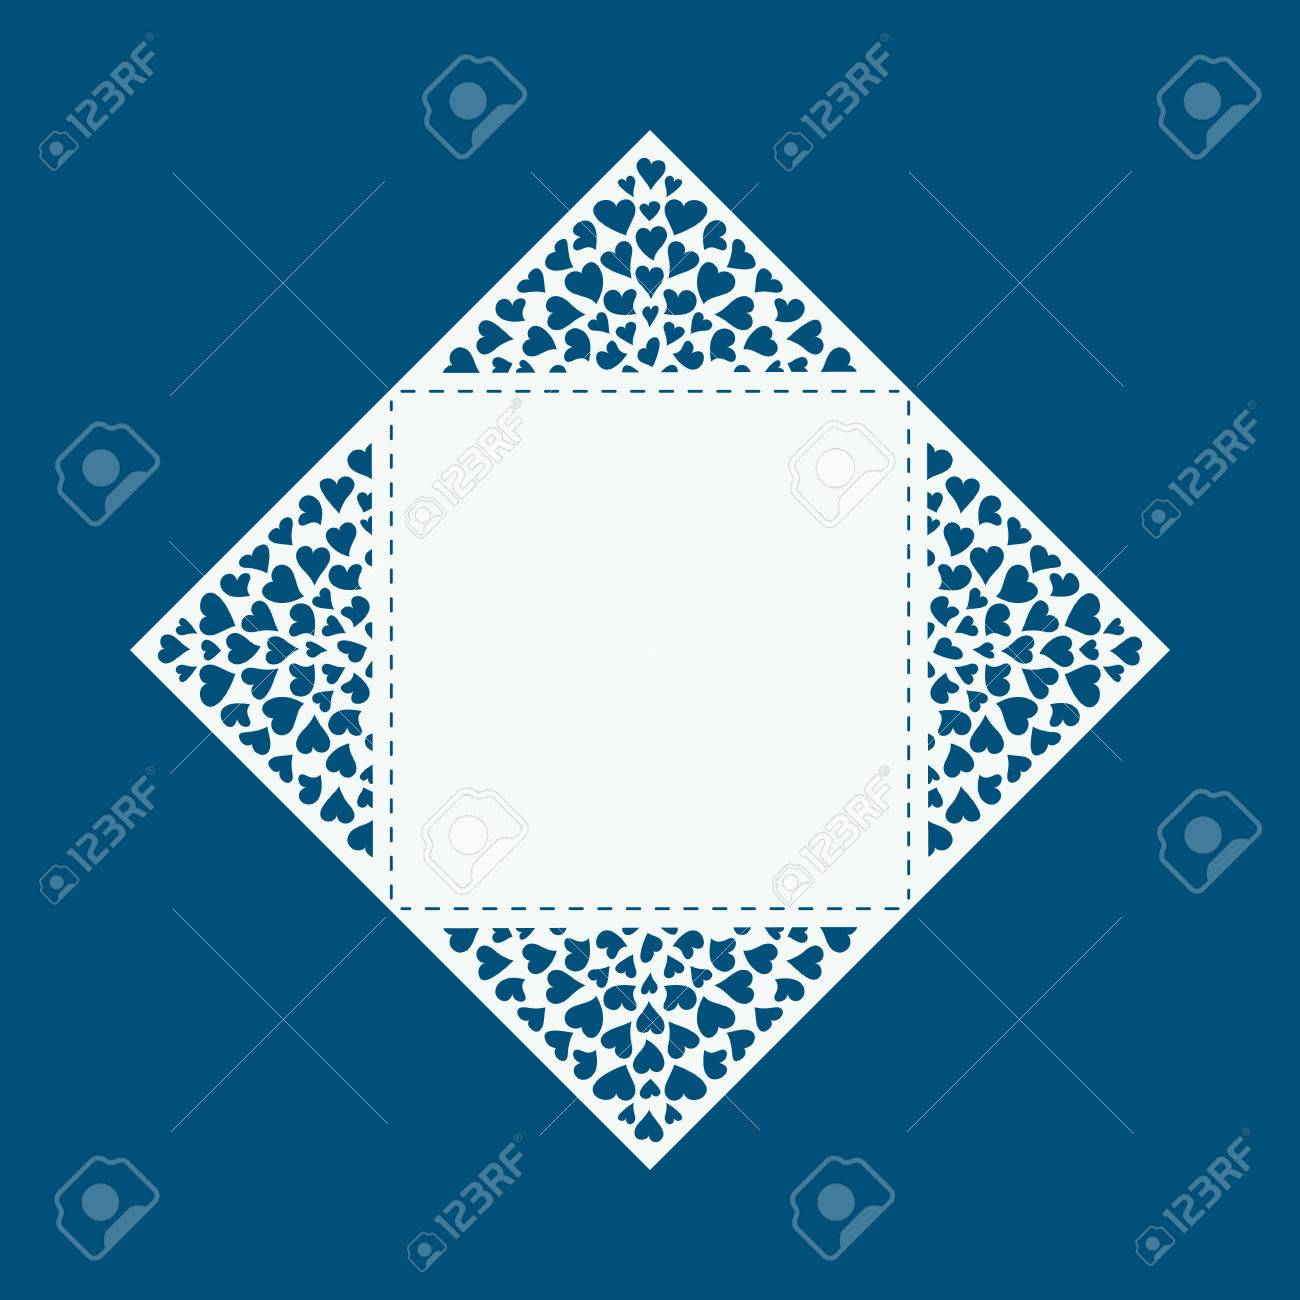 Laser Cut Card With Hearts Laser Cutting Template For Diy